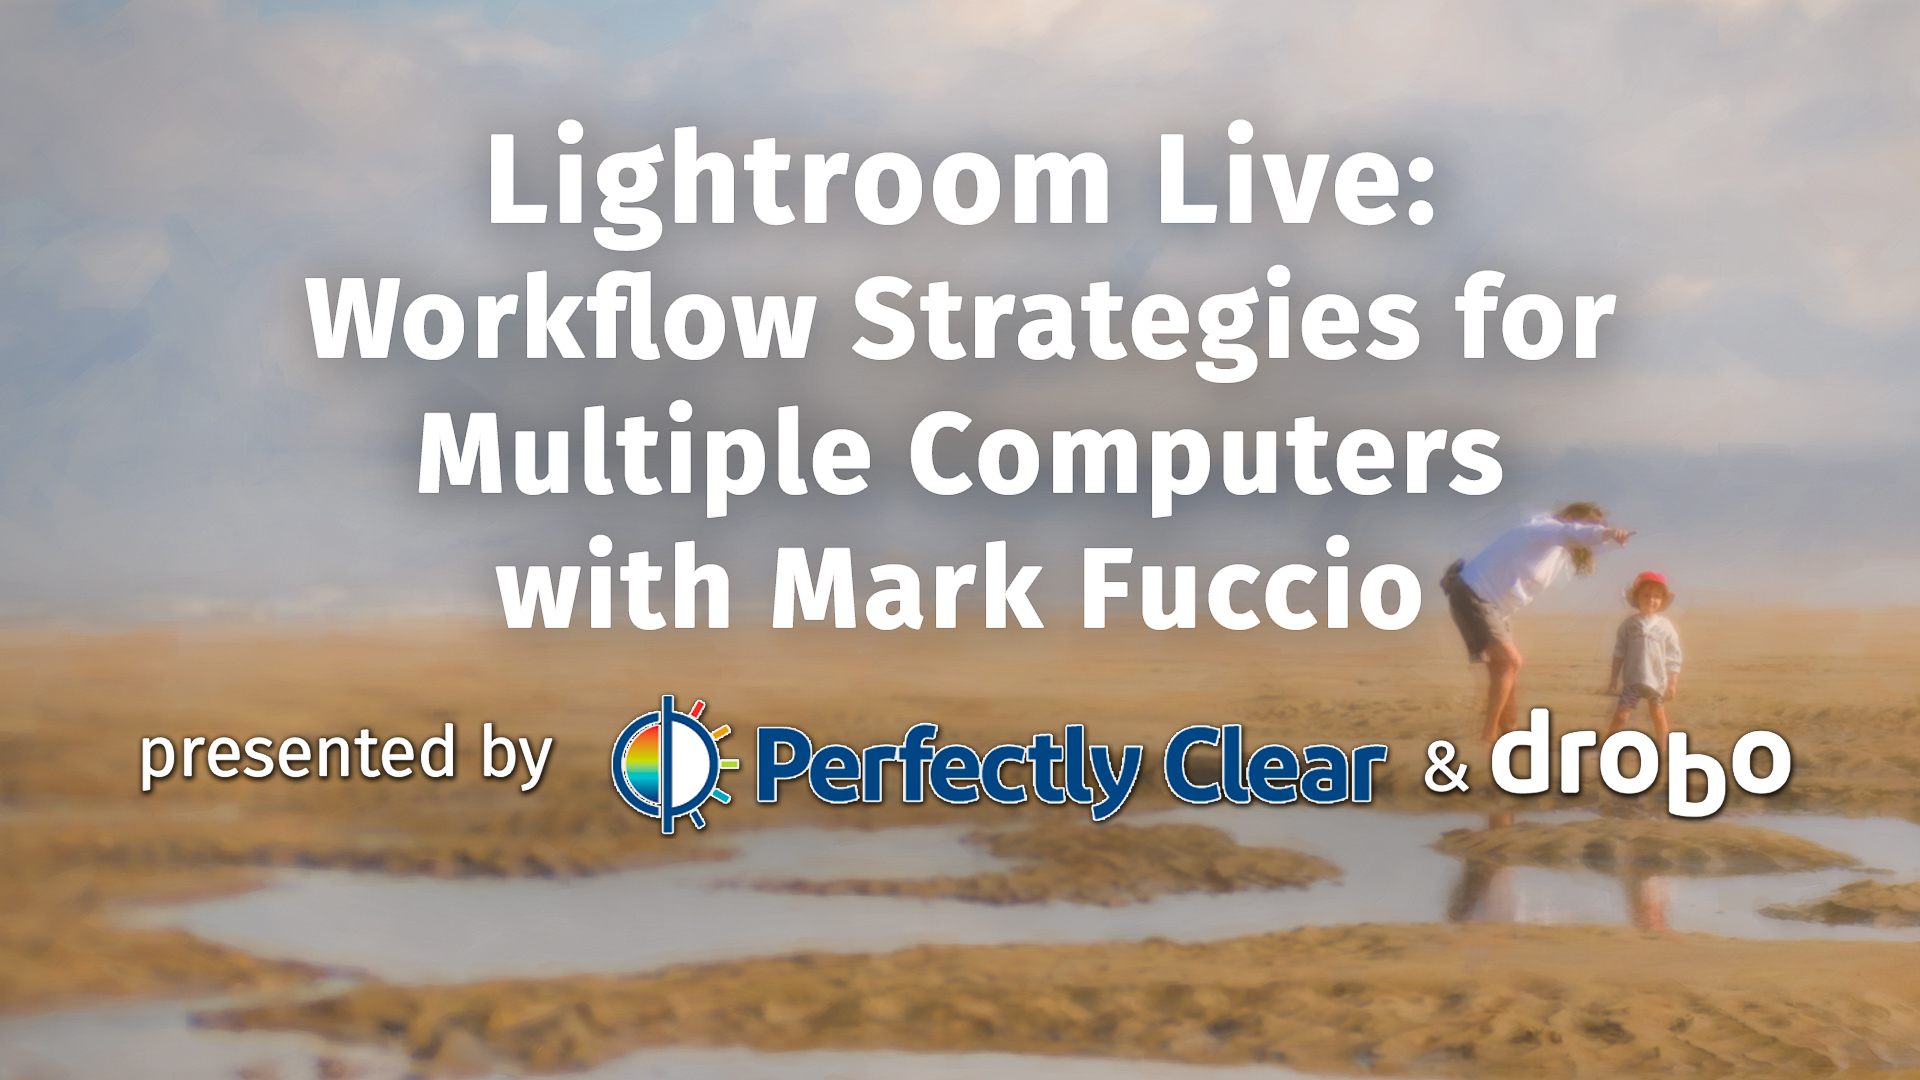 Lightroom Live: Workflow Strategies for Multiple Computers with Mark Fuccio